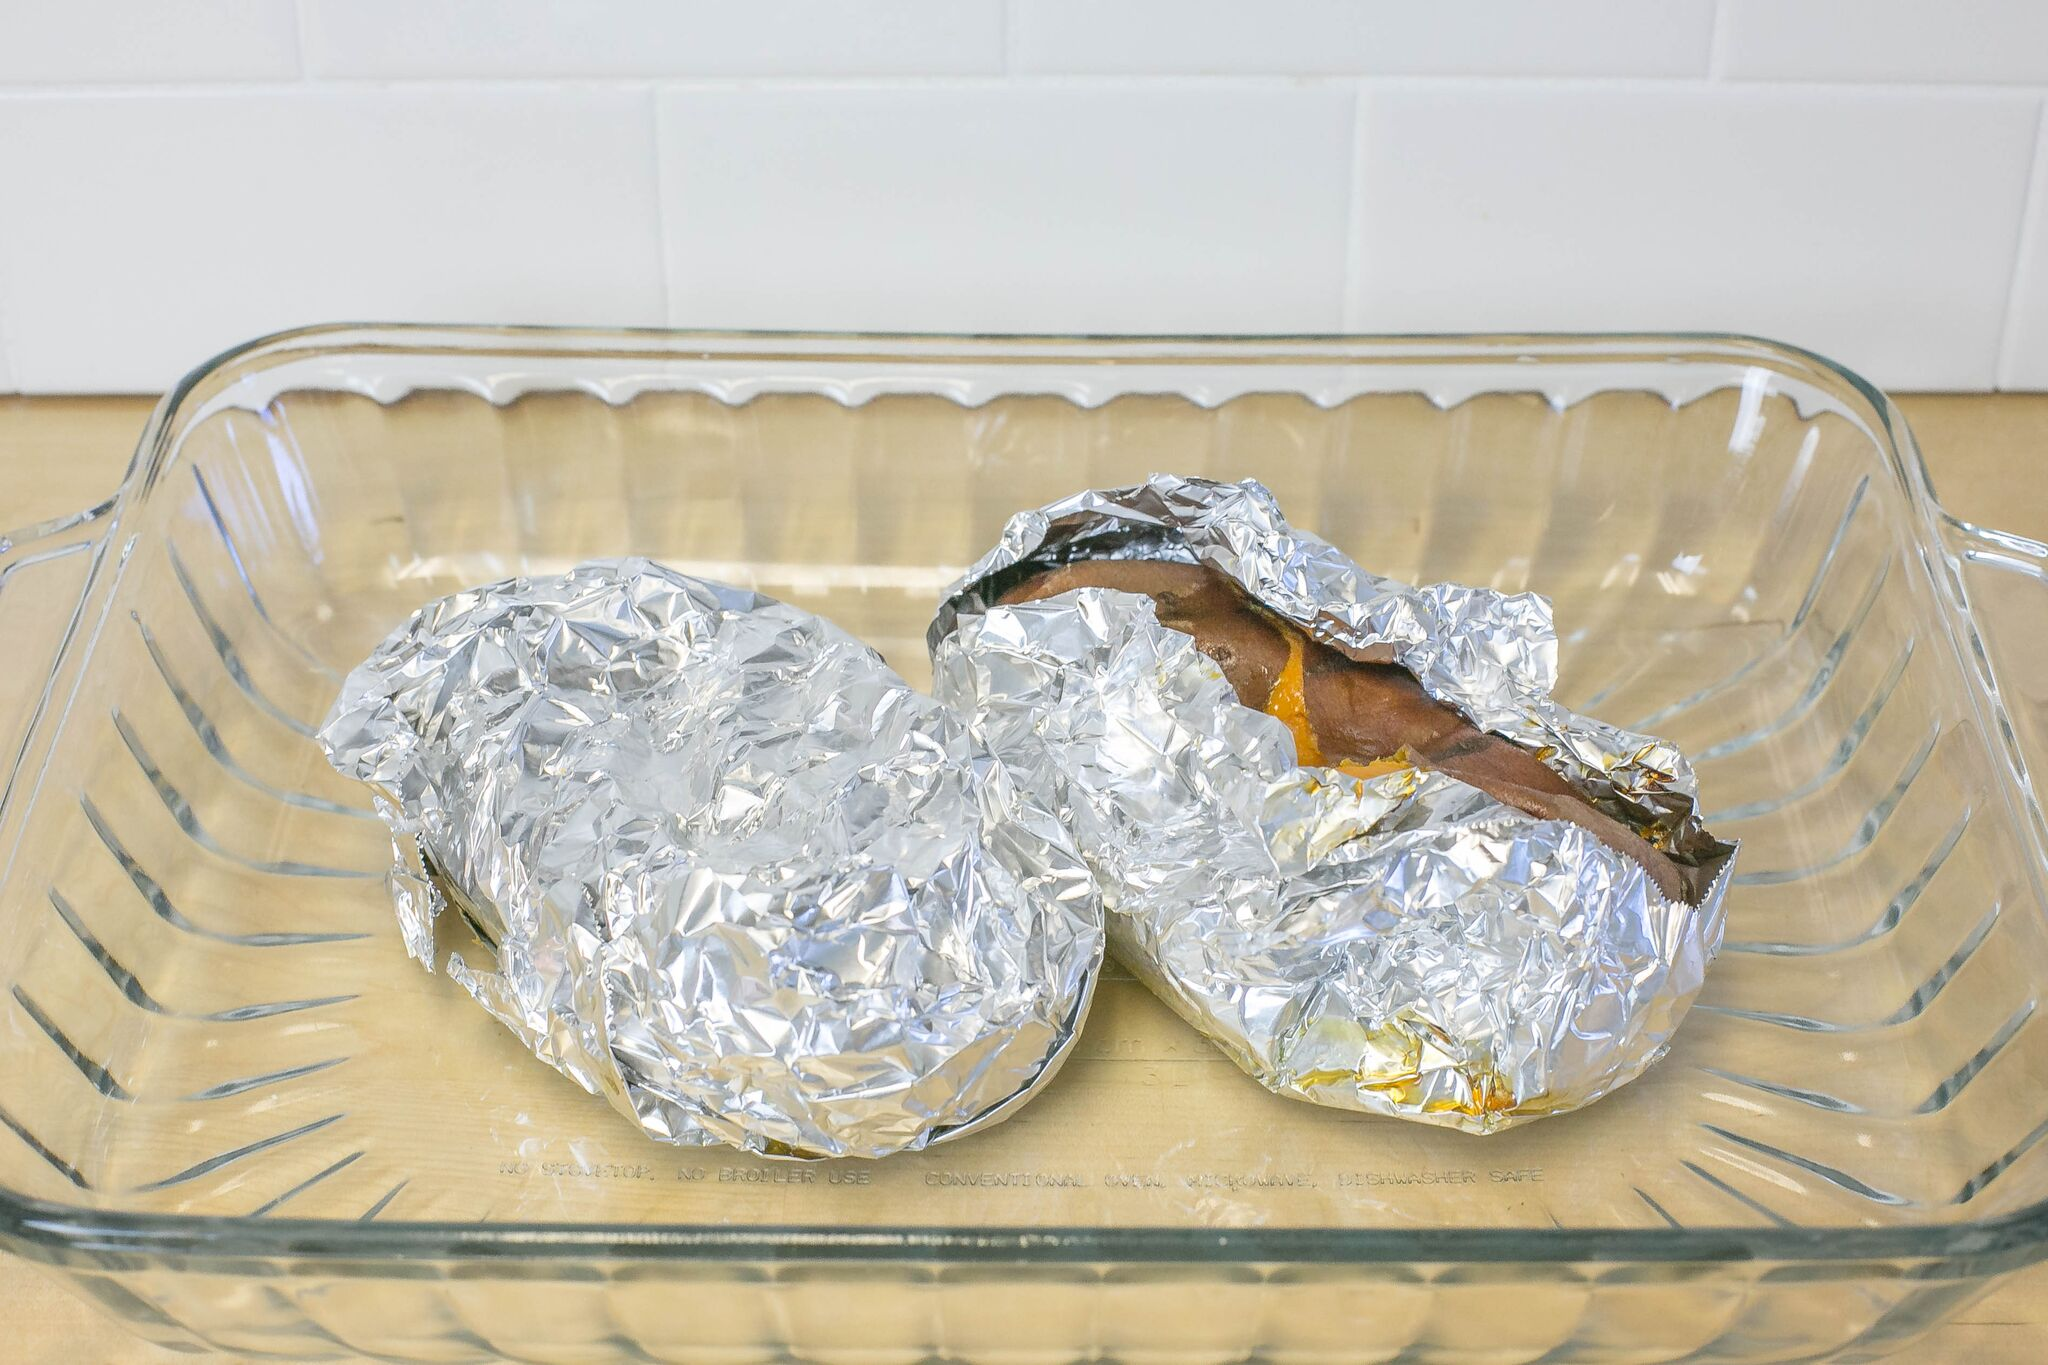 Pierce each sweet potato several times with a fork then wrap potatoes in foil and place in cooking sheet.